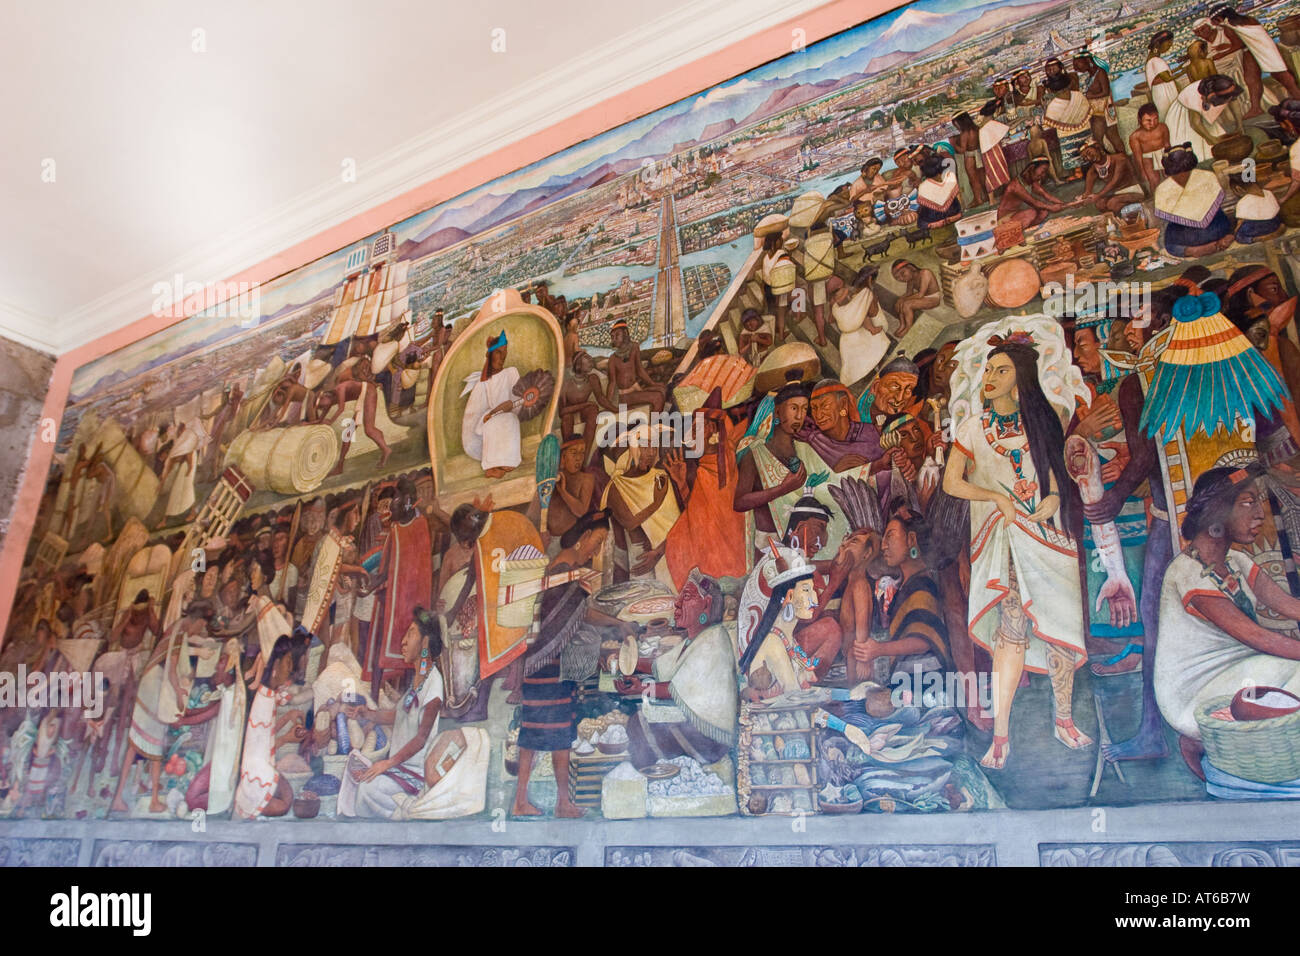 The great tenochtitlan diego rivera fresco mural 1945 for Aztec mural painting